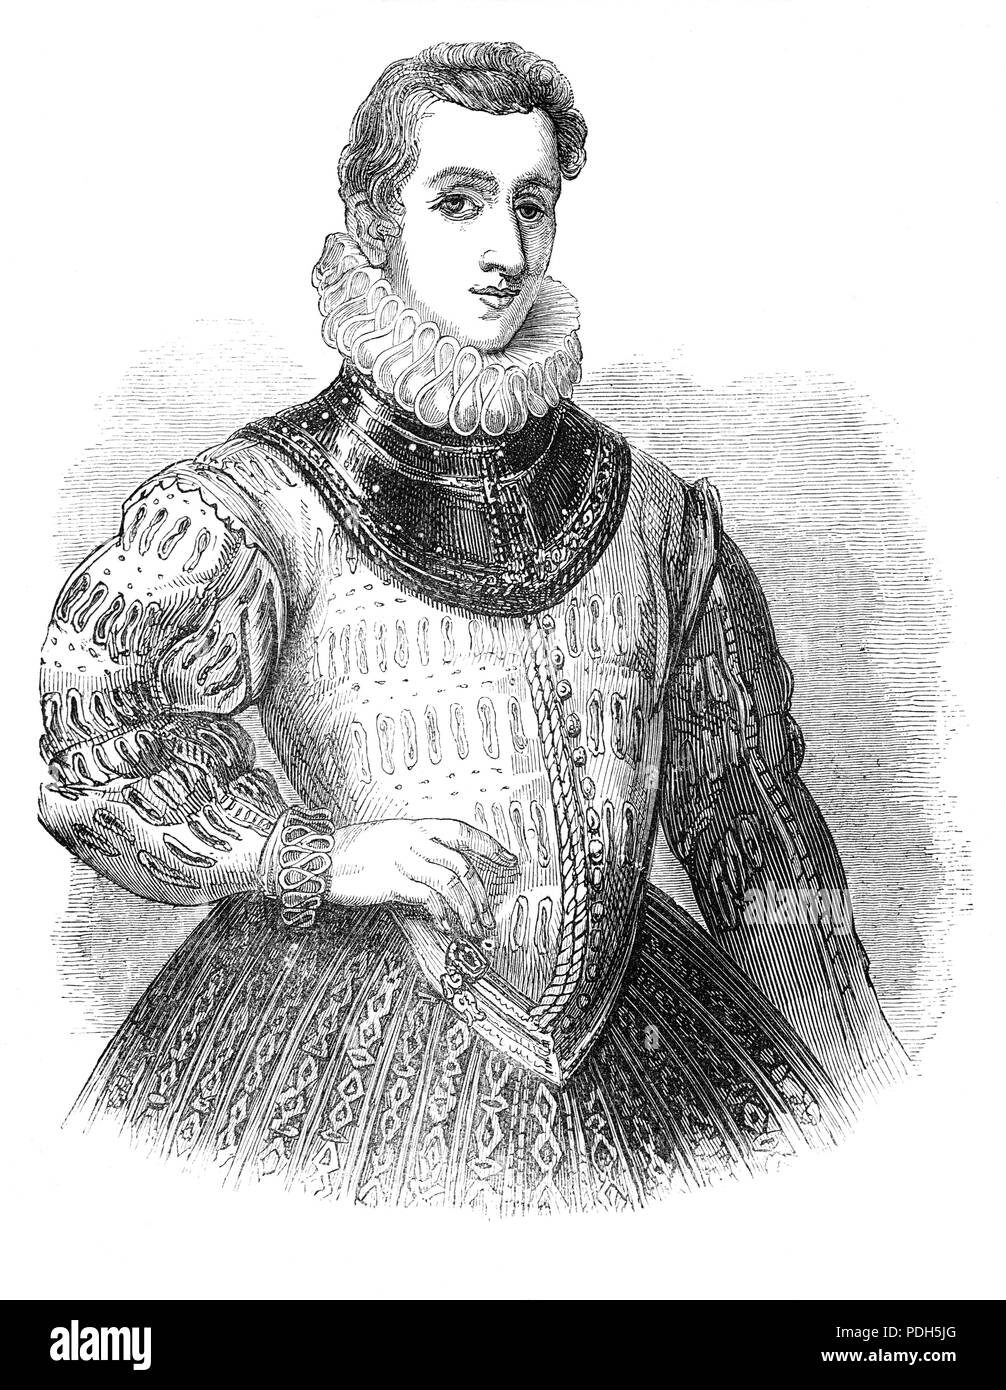 Sir Philip Sidney (1554-1586) was an English poet, courtier, scholar, and soldier, remembered as one of the most prominent figures of the Elizabethan age. His works include Astrophel and Stella, The Defence of Poesy (also known as The Defence of Poetry or An Apology for Poetry), and The Countess of Pembroke's Arcadia. In the Netherlands, he consistently urged boldness on his superior, his uncle the Earl of Leicester. During the Battle of Zutphen in 1586, he was shot in the thigh and died of gangrene 26 days later, at the age of 31. - Stock Image